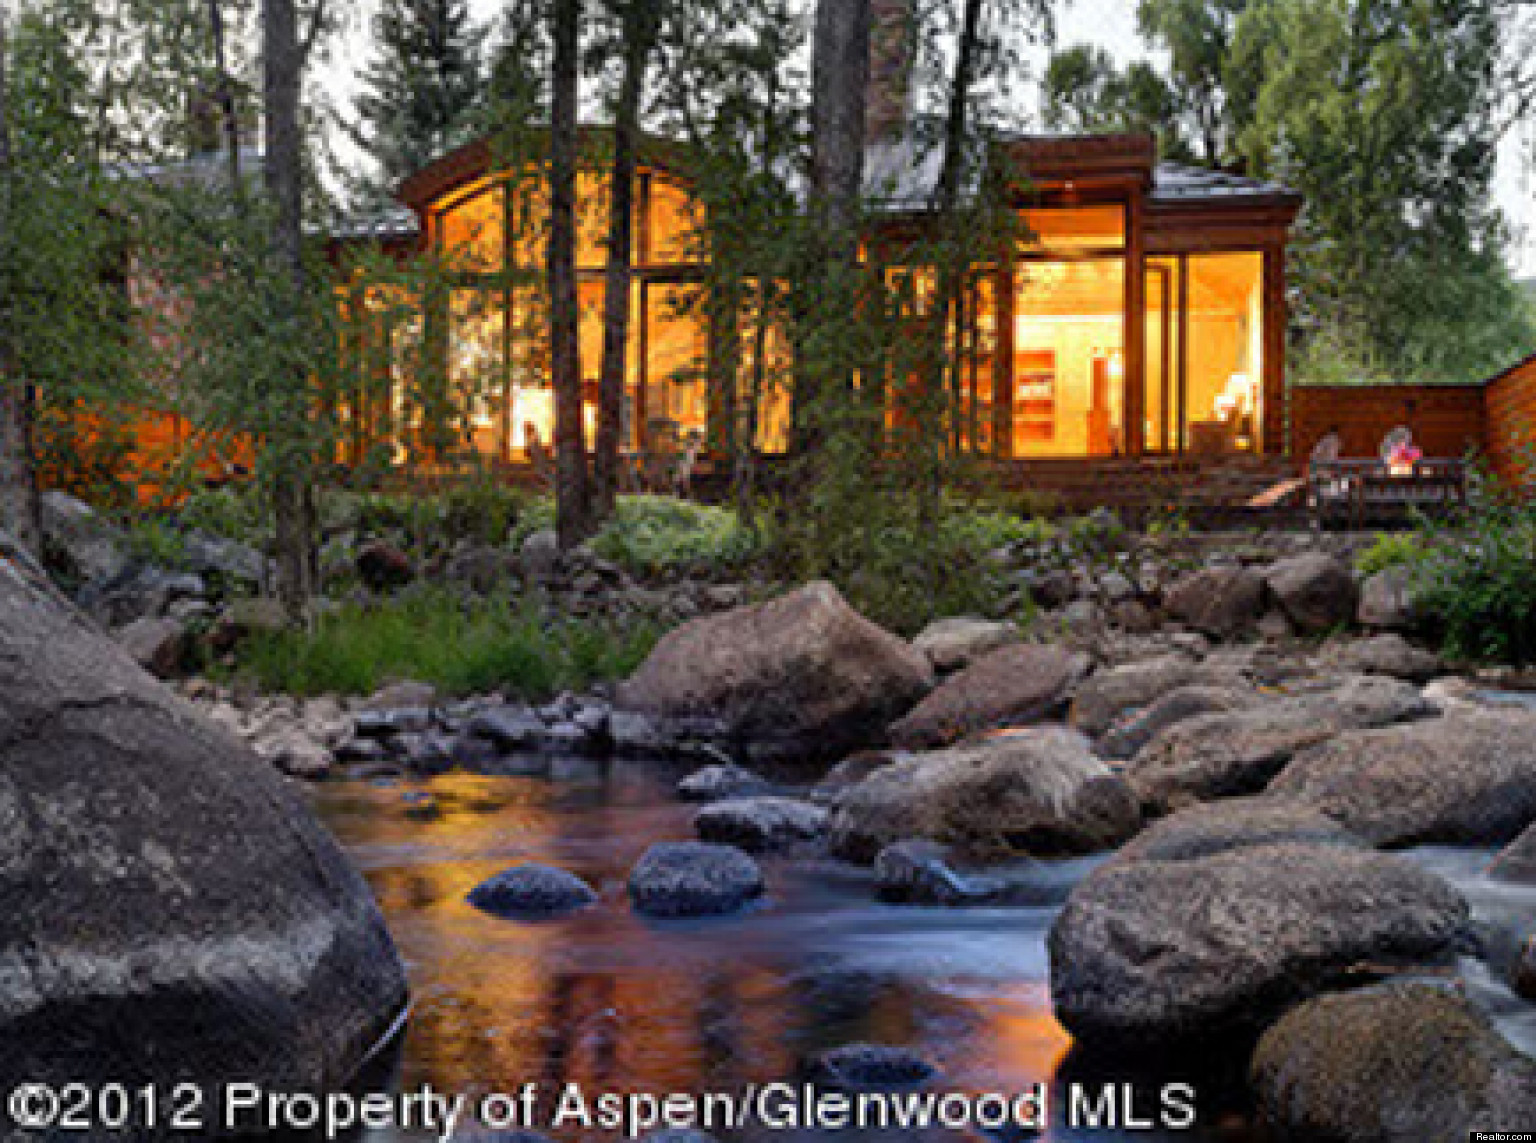 Top 10 Most Expensive Mountain Cabins In Colorado, According To